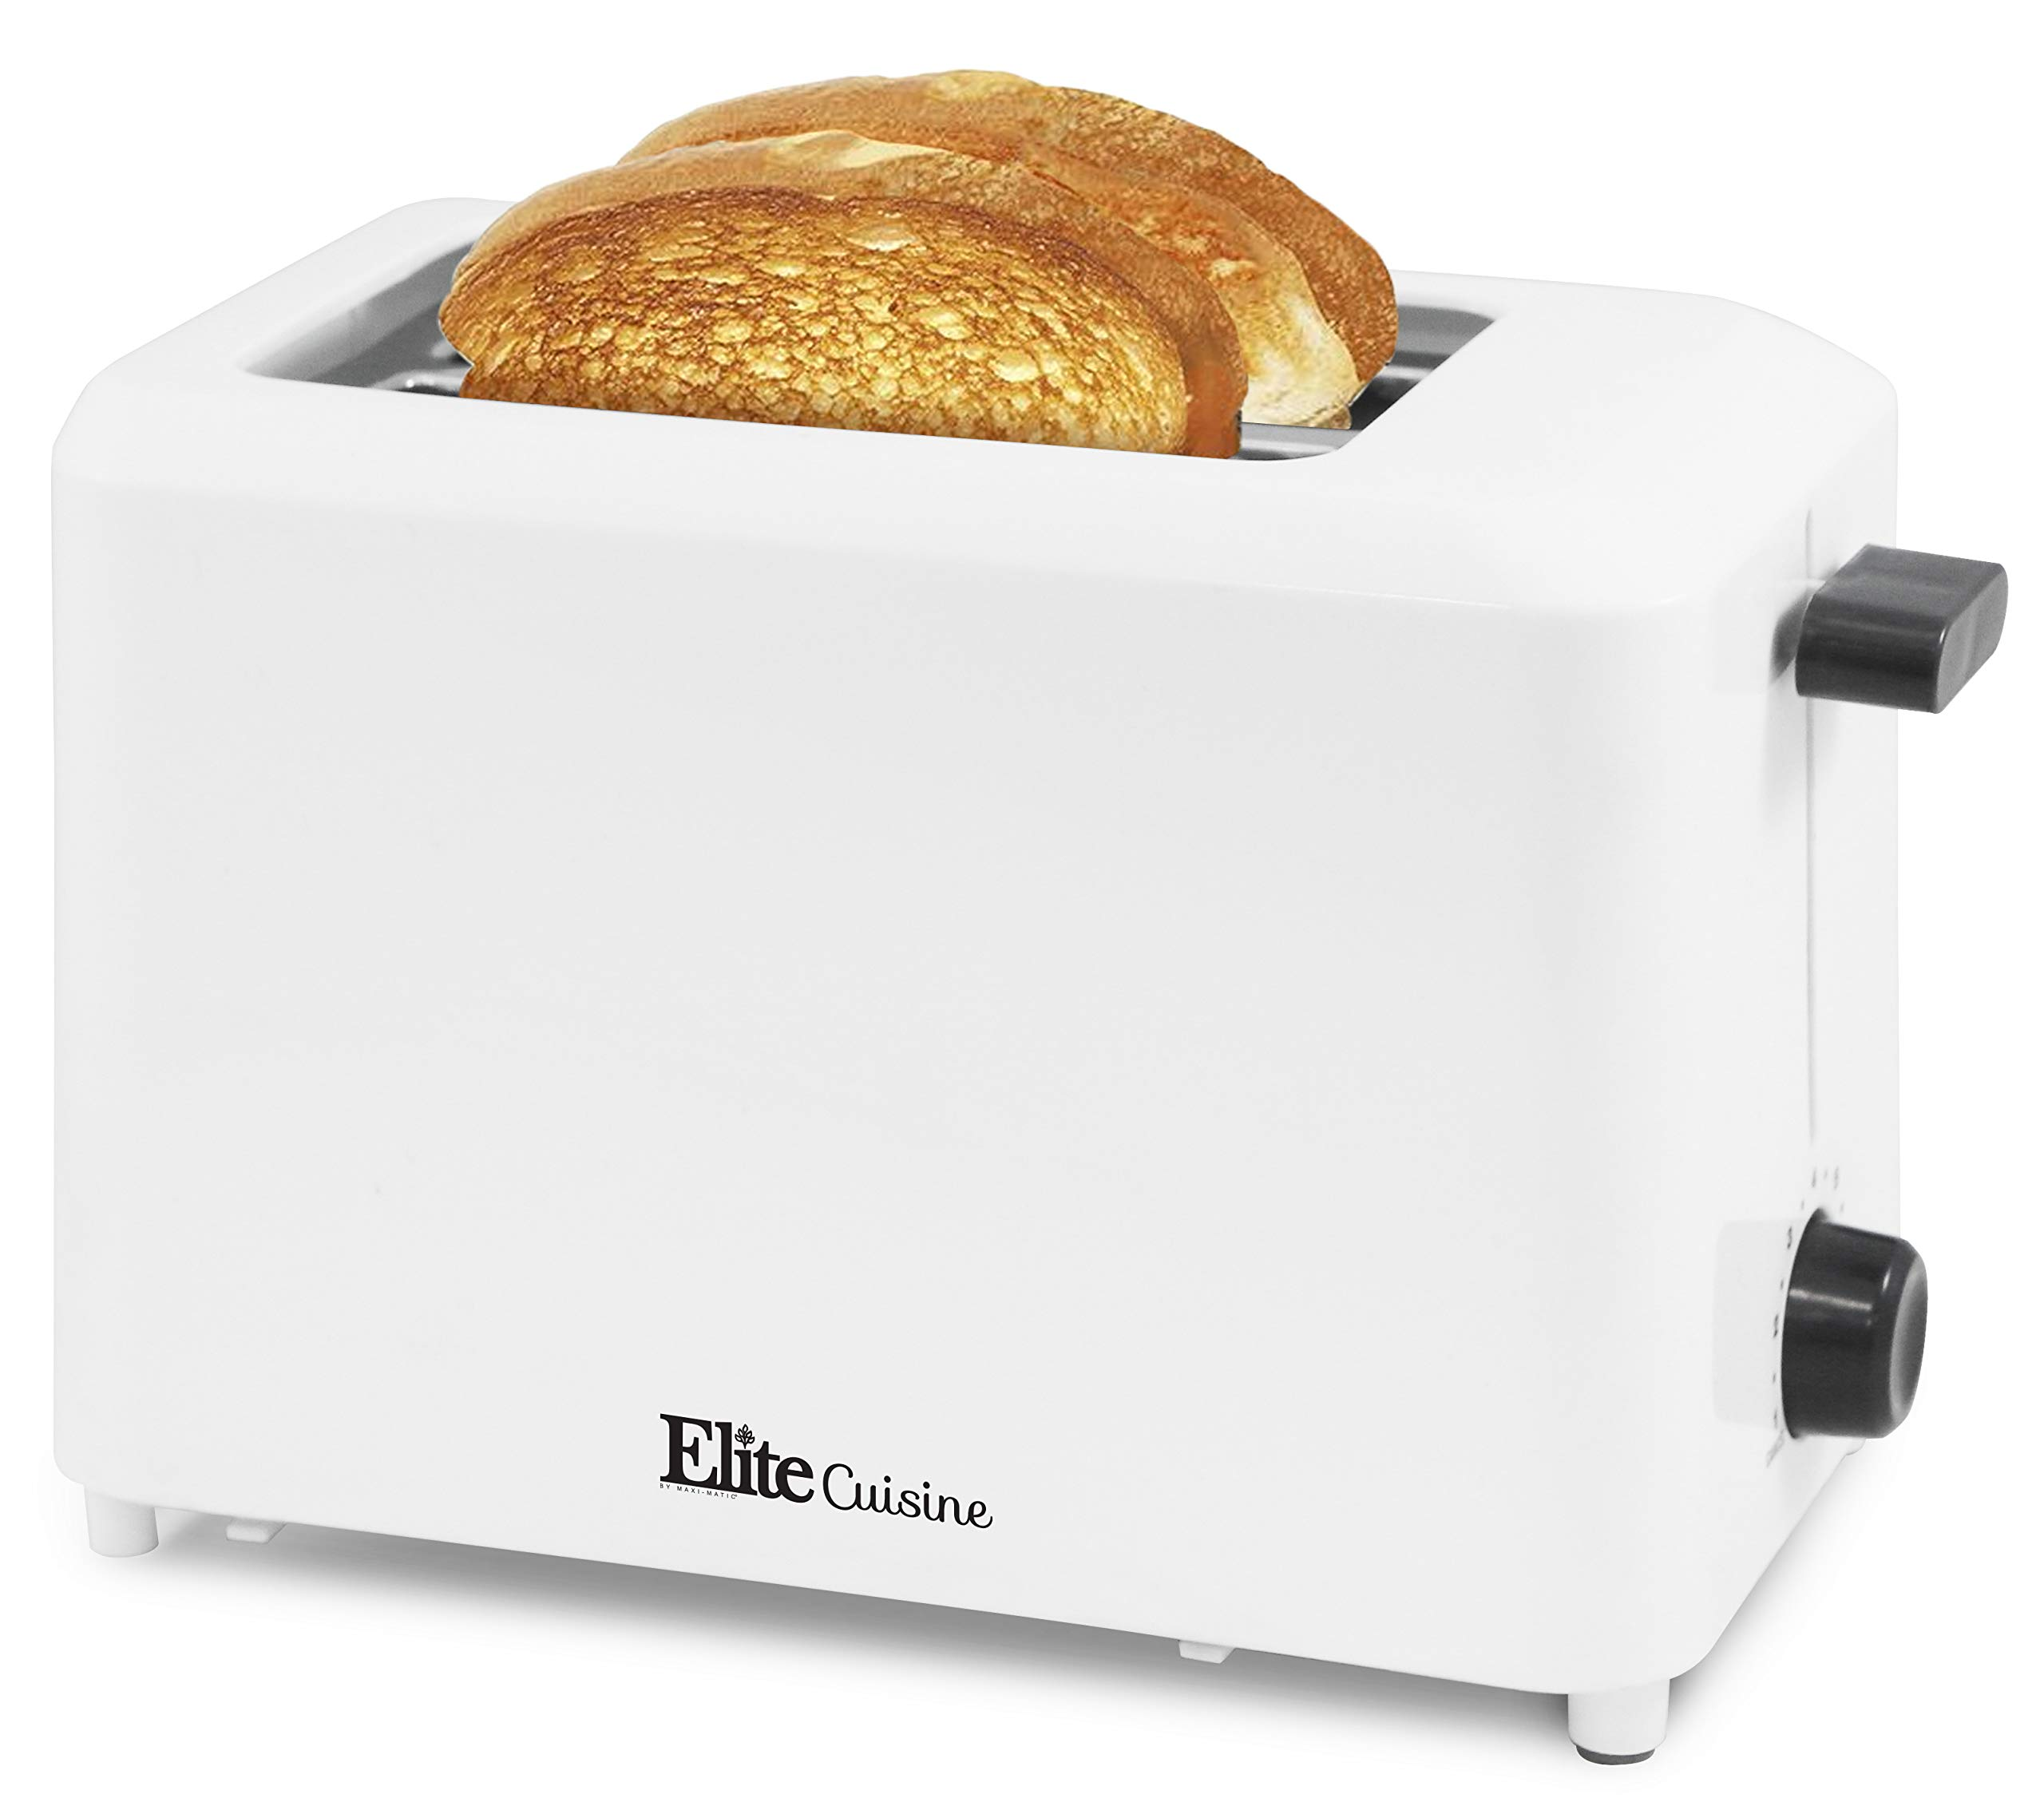 """Maxi-Matic ECT-1027 Cool Touch Toaster with 7 Temperature Settings & Extra Wide 1.25"""" Slots for Bagels, Waffles, Specialty Breads, Puff Pastry, Snacks, UL Certified, 2 Slices, White"""